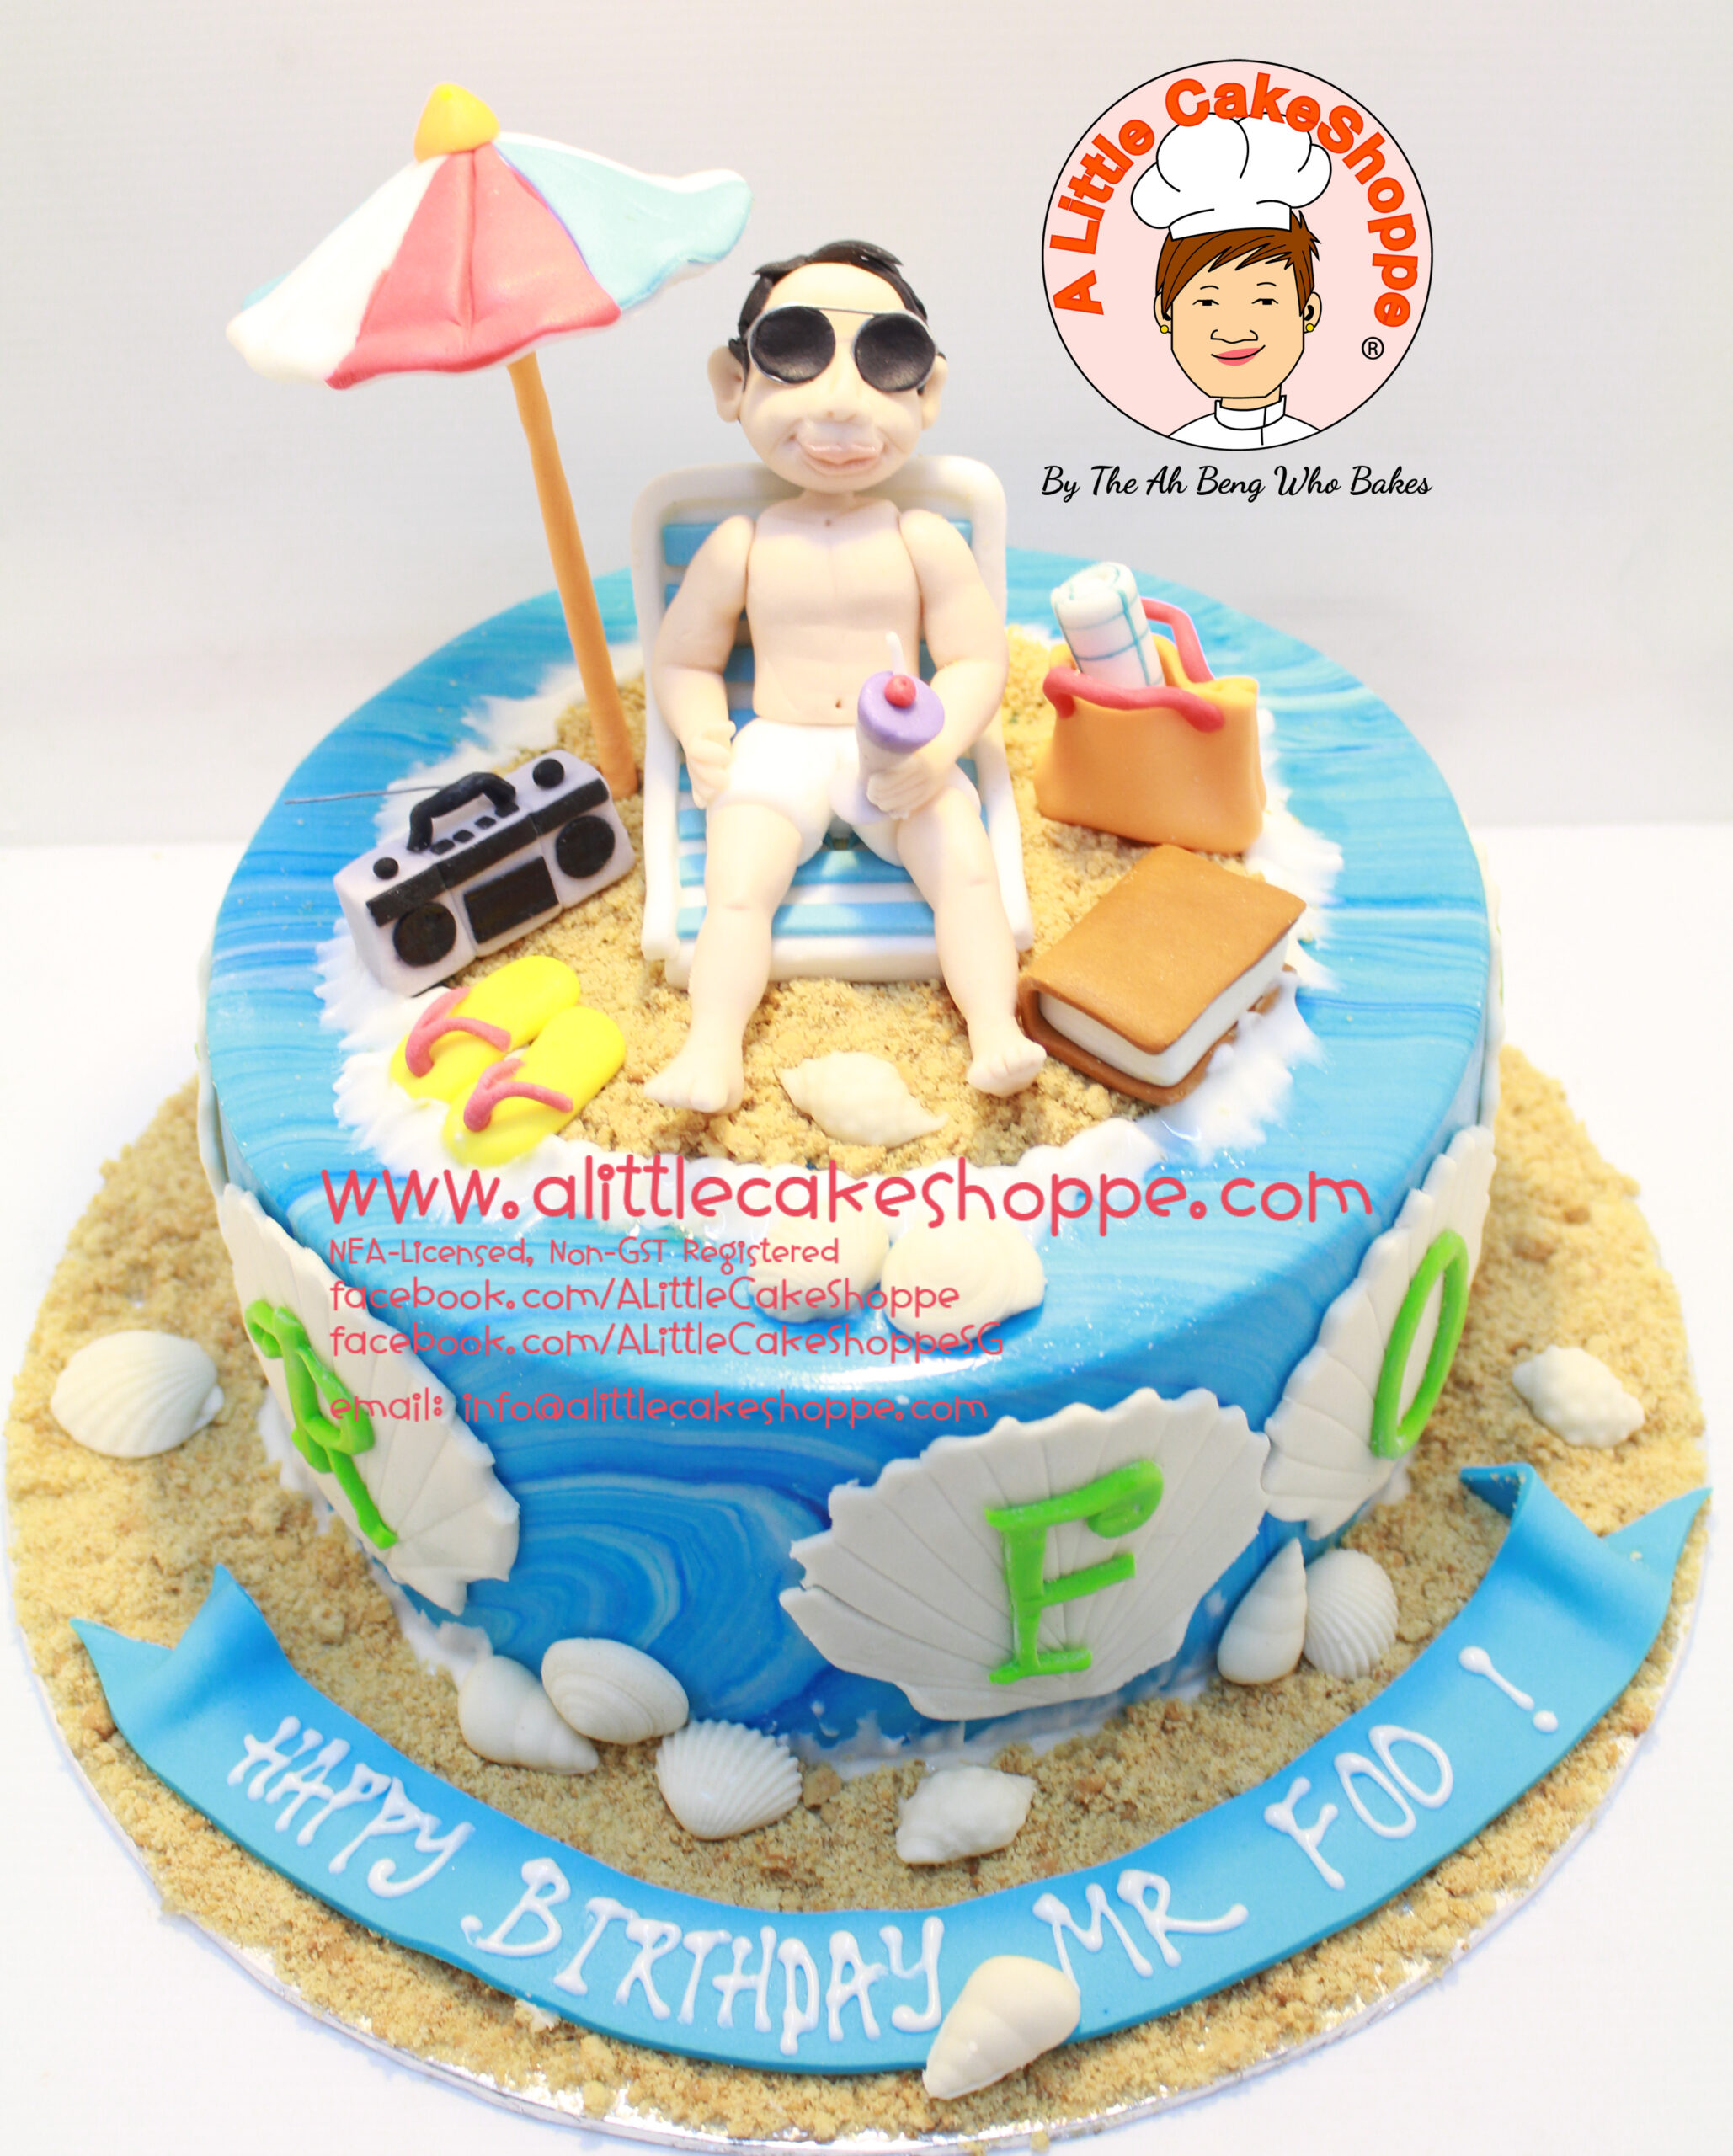 Best Customised Cake Shop Singapore custom cake 2D 3D birthday cake cupcakes desserts wedding corporate events anniversary 1st birthday 21st birthday fondant fresh cream buttercream cakes alittlecakeshoppe a little cake shoppe compliments review singapore bakers SG cake shop cakeshop ah beng who bakes beach